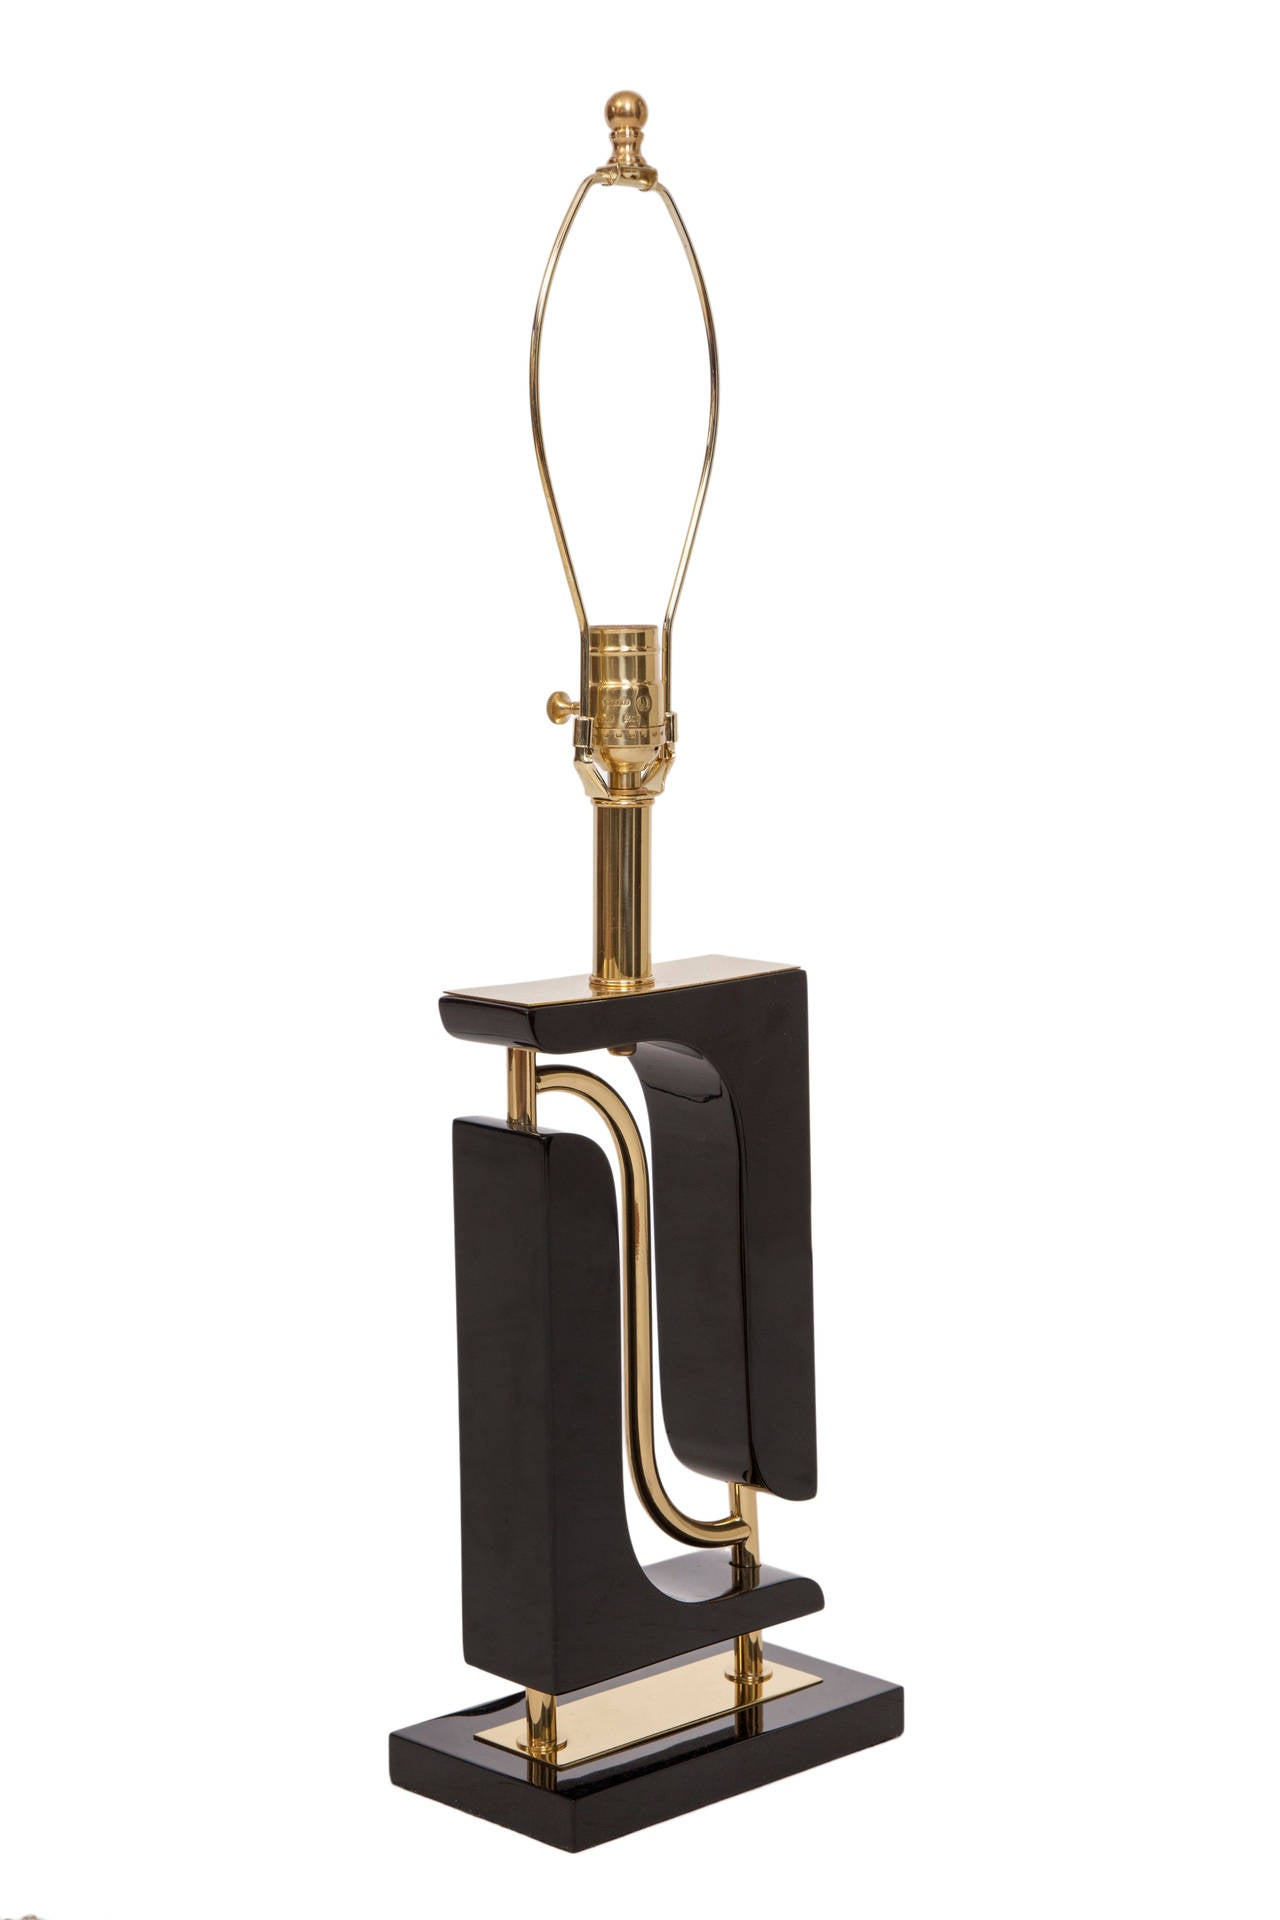 Midcentury Sculptural Table Lamp in Black Resin with Brass ...